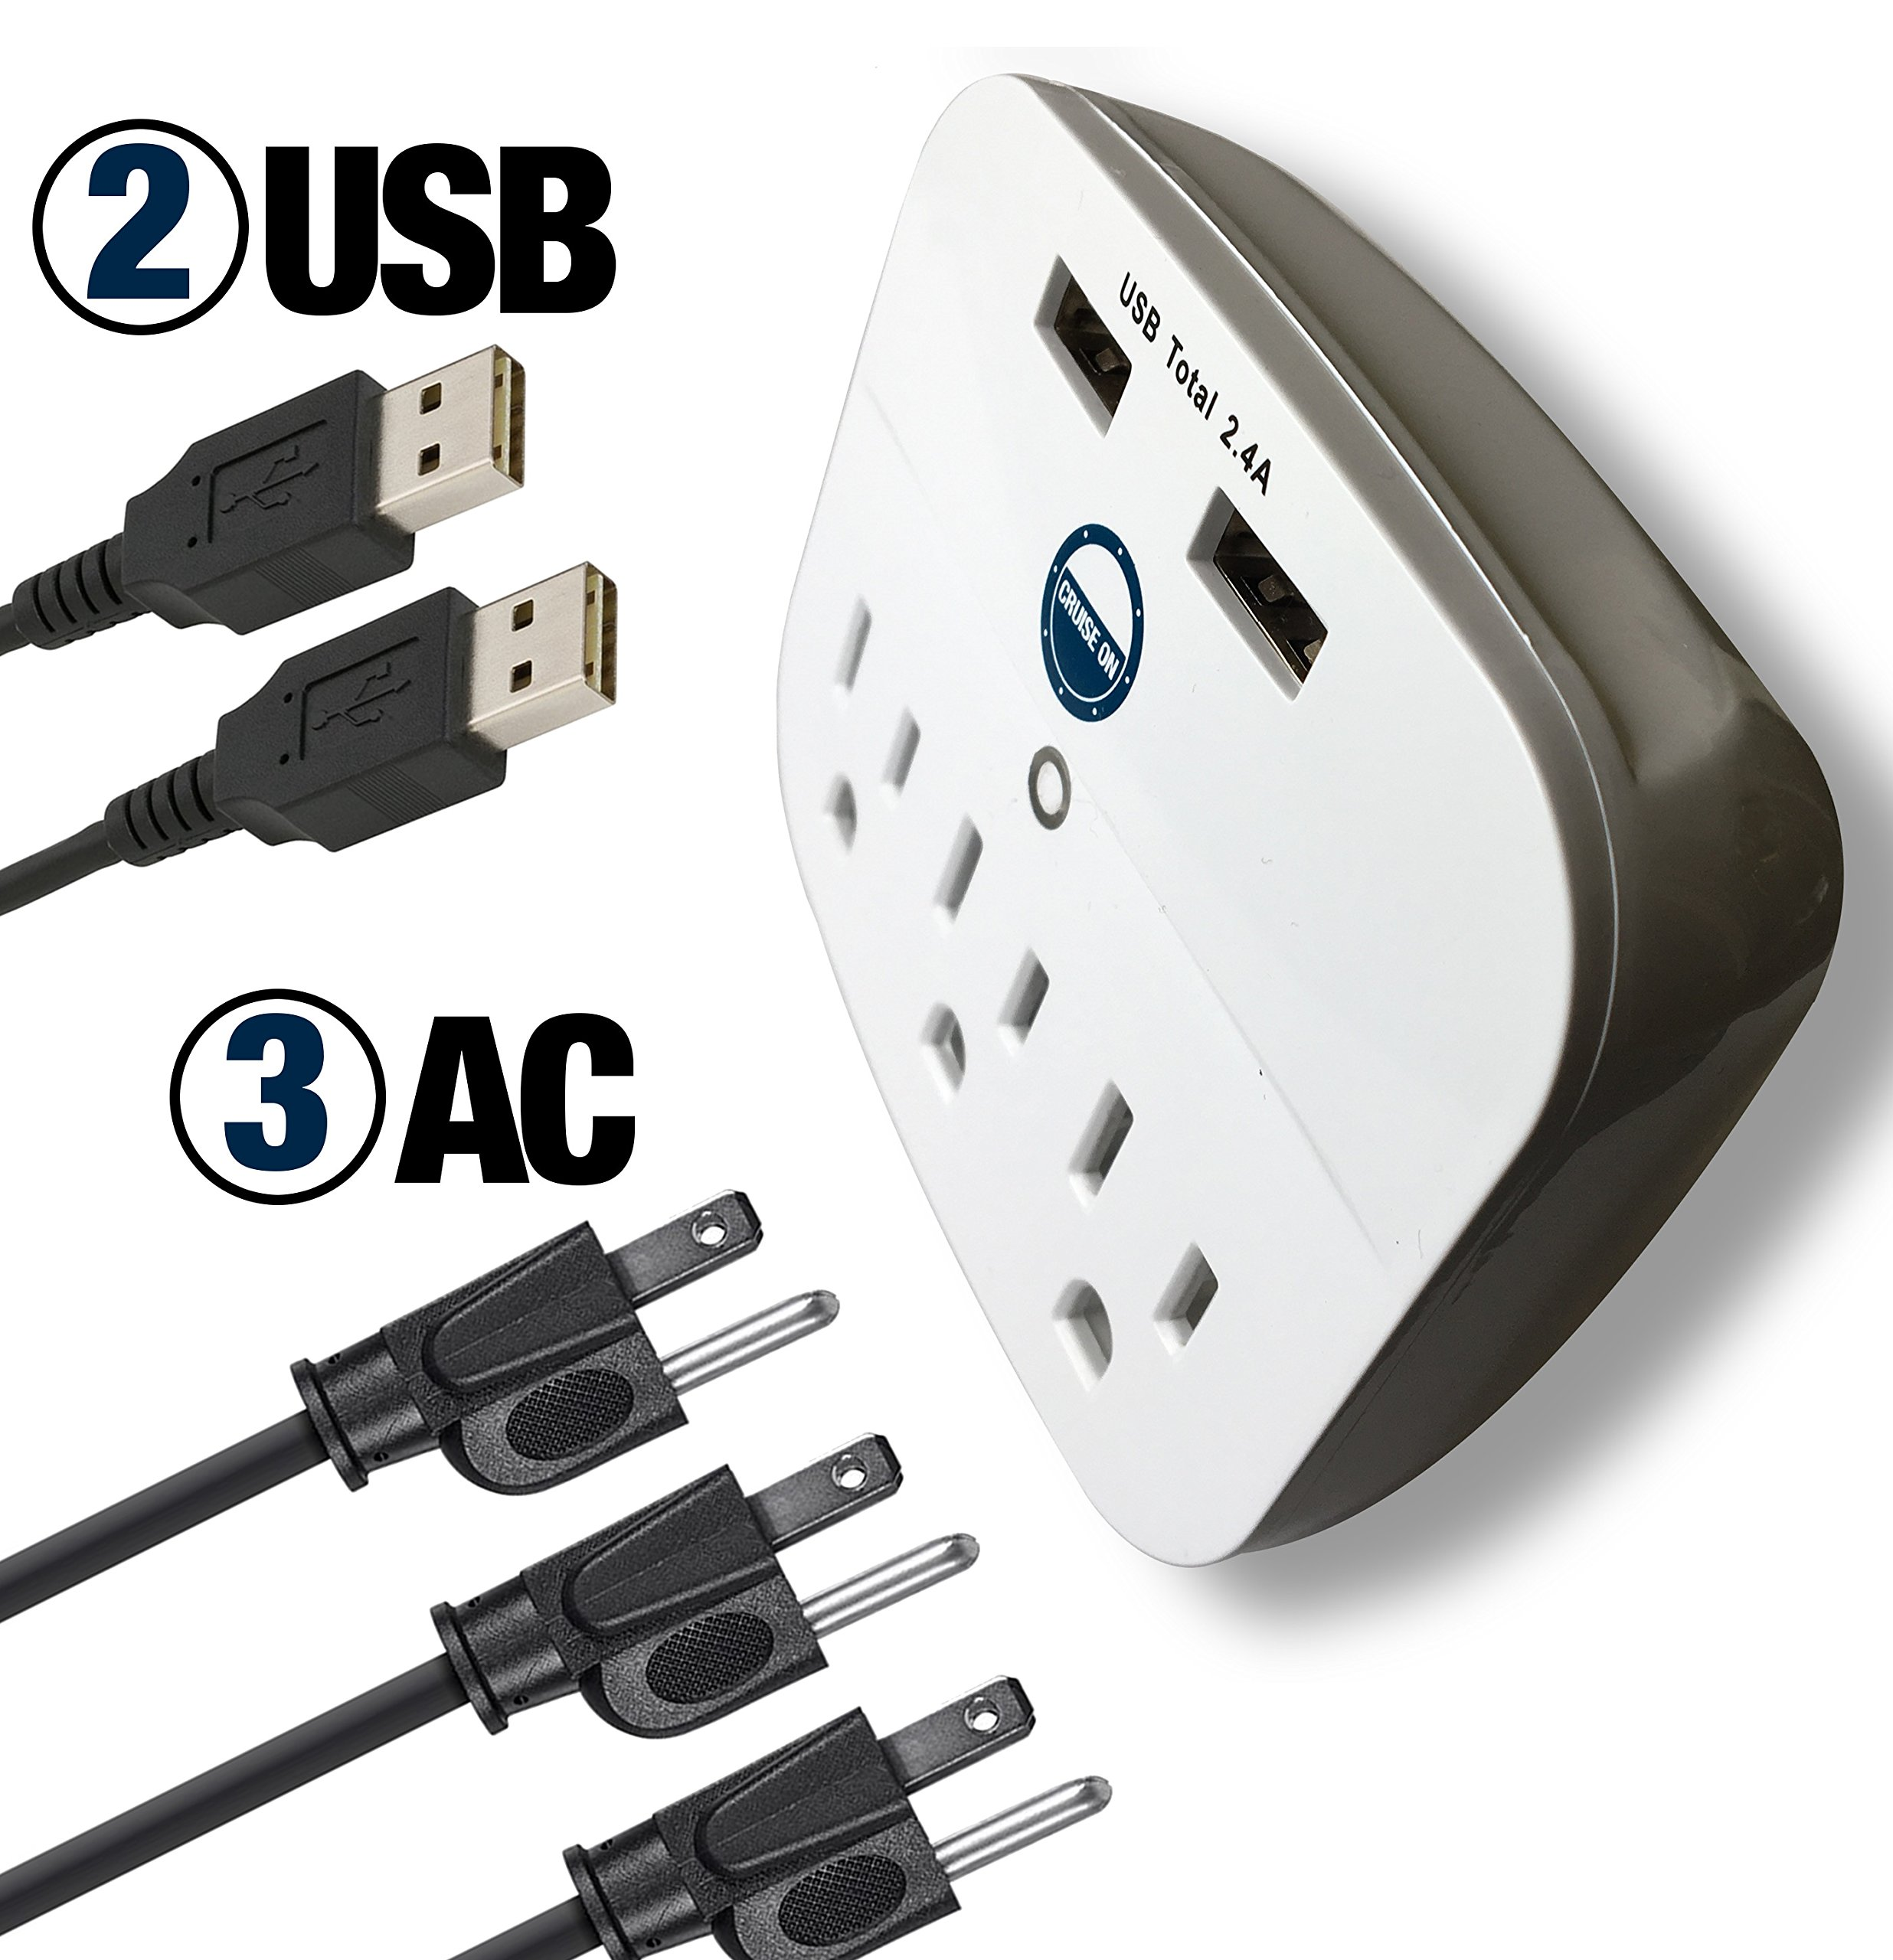 Cruise Power Strip with USB Outlets - Non Surge Protection - Cruise Ship Approved by Cruise On (Image #5)